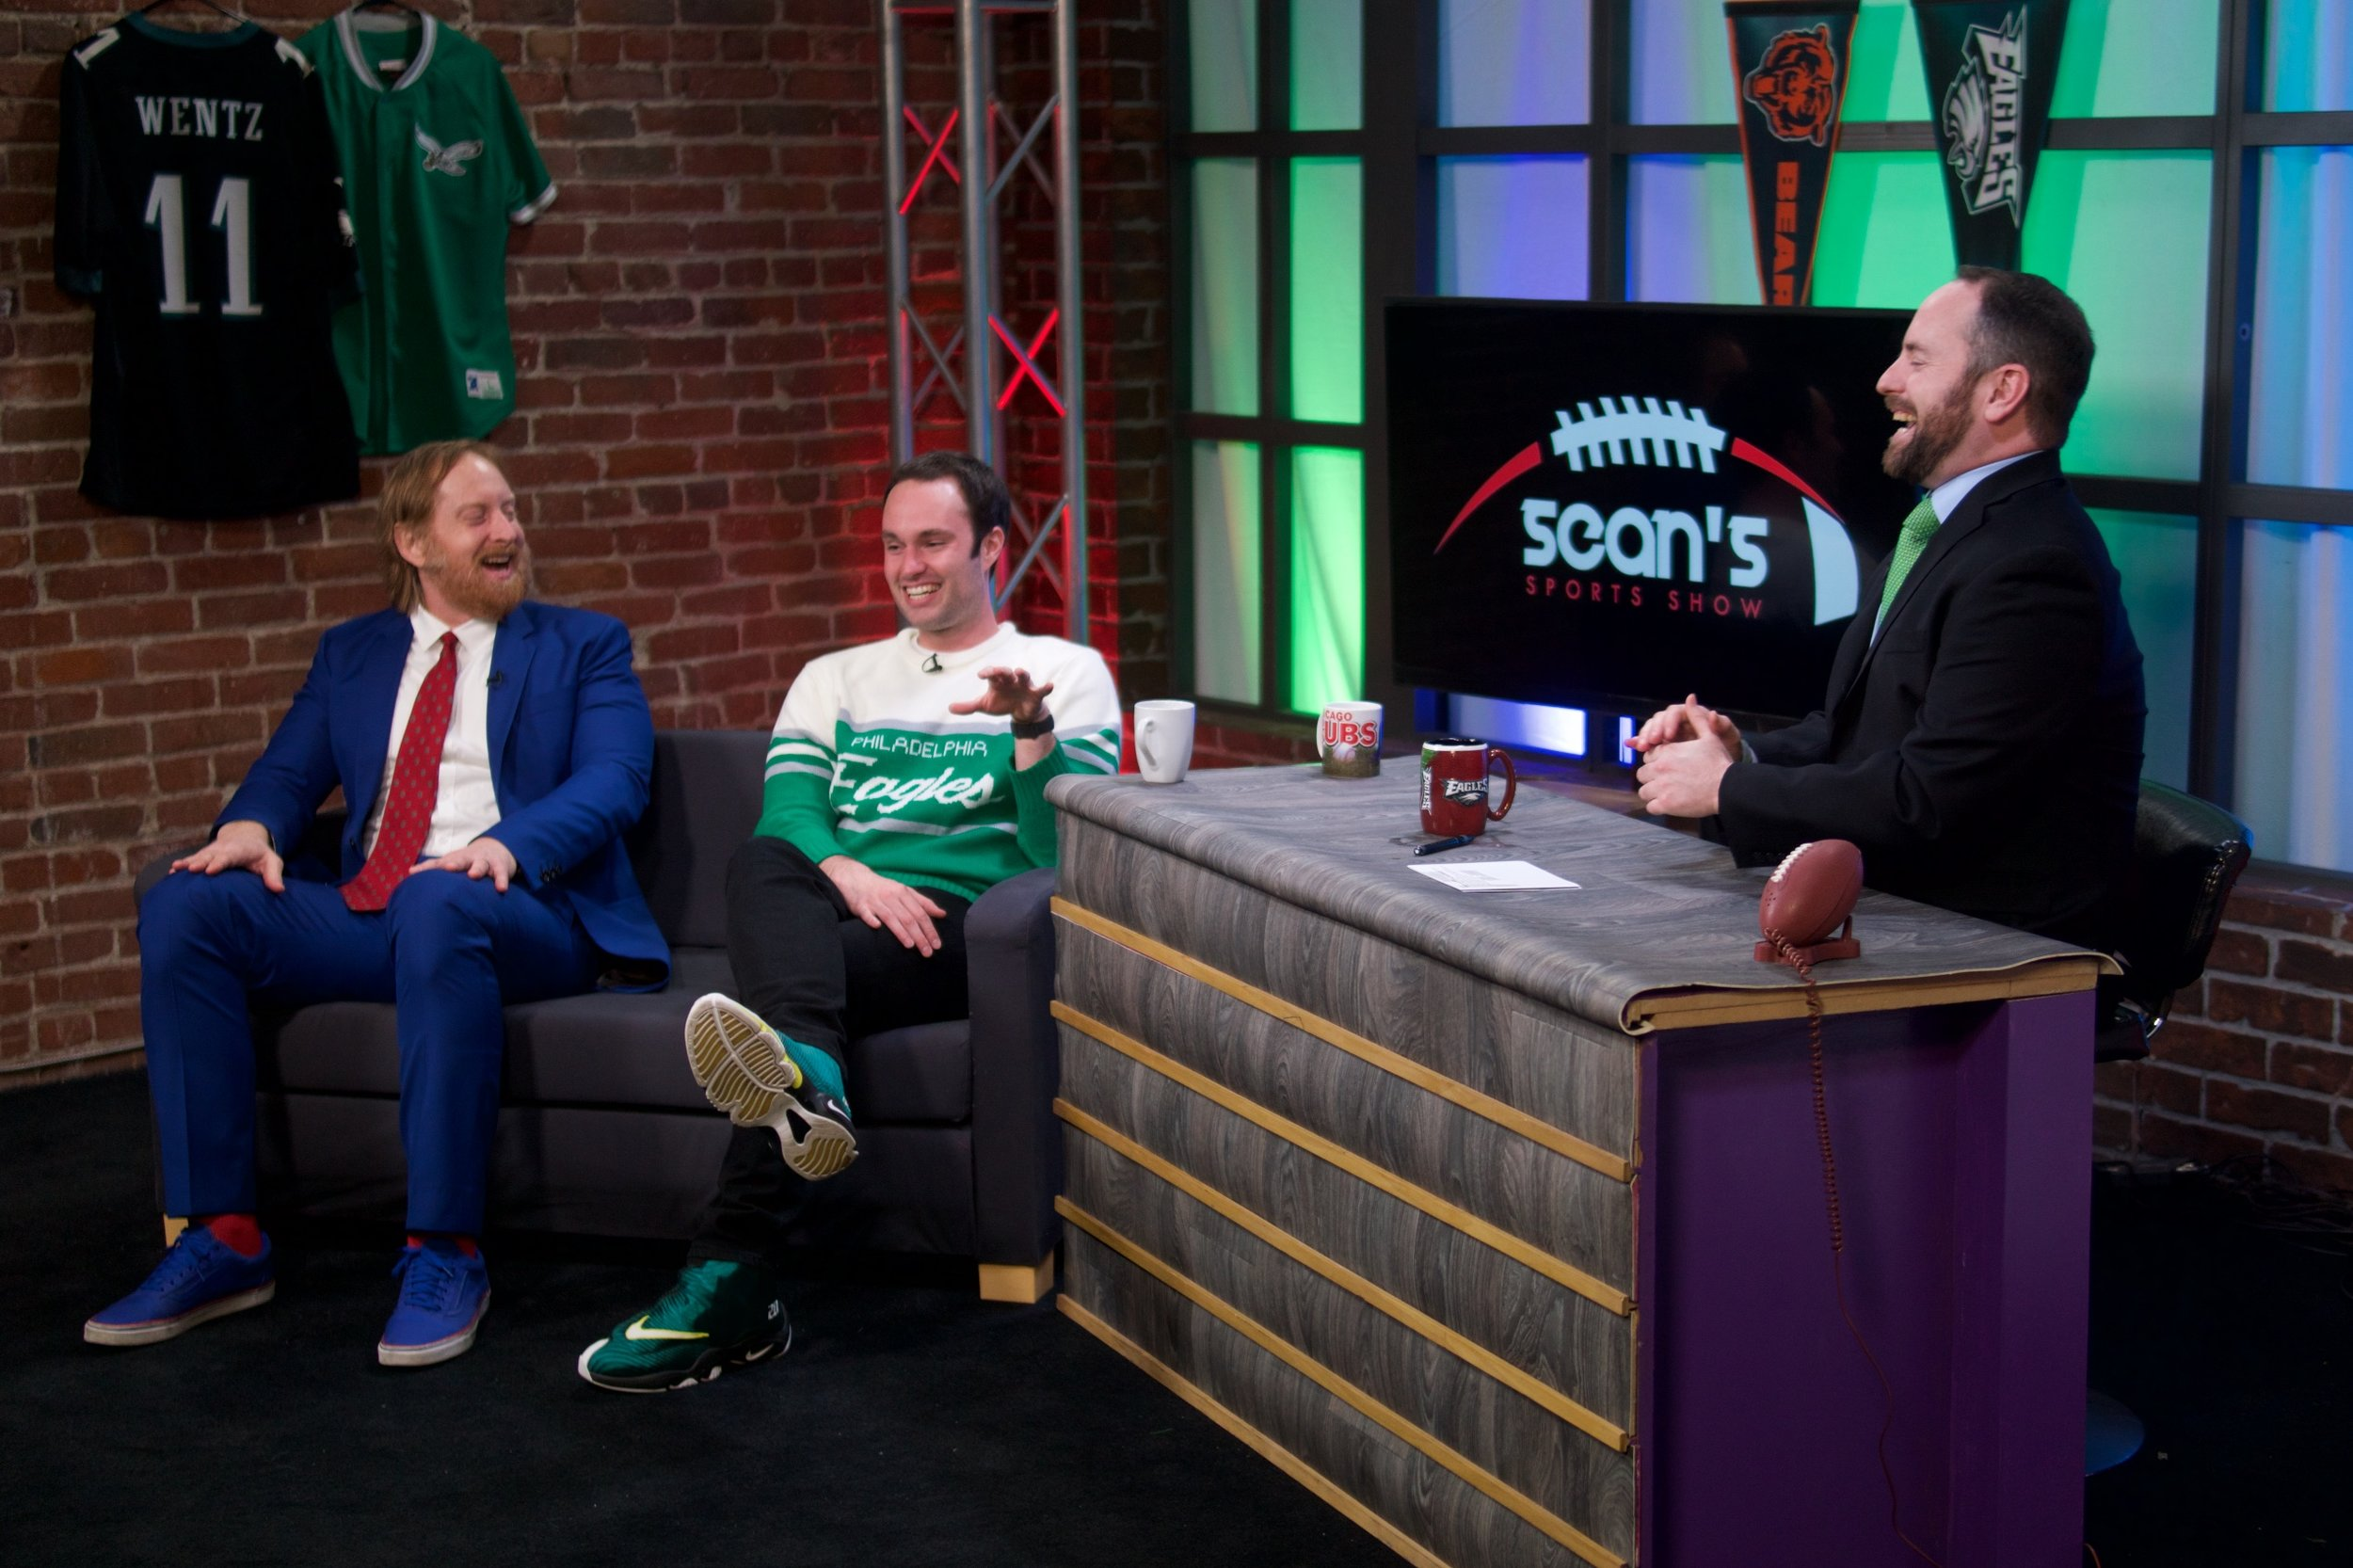 Seans Sports Show Sean Green 25.jpg